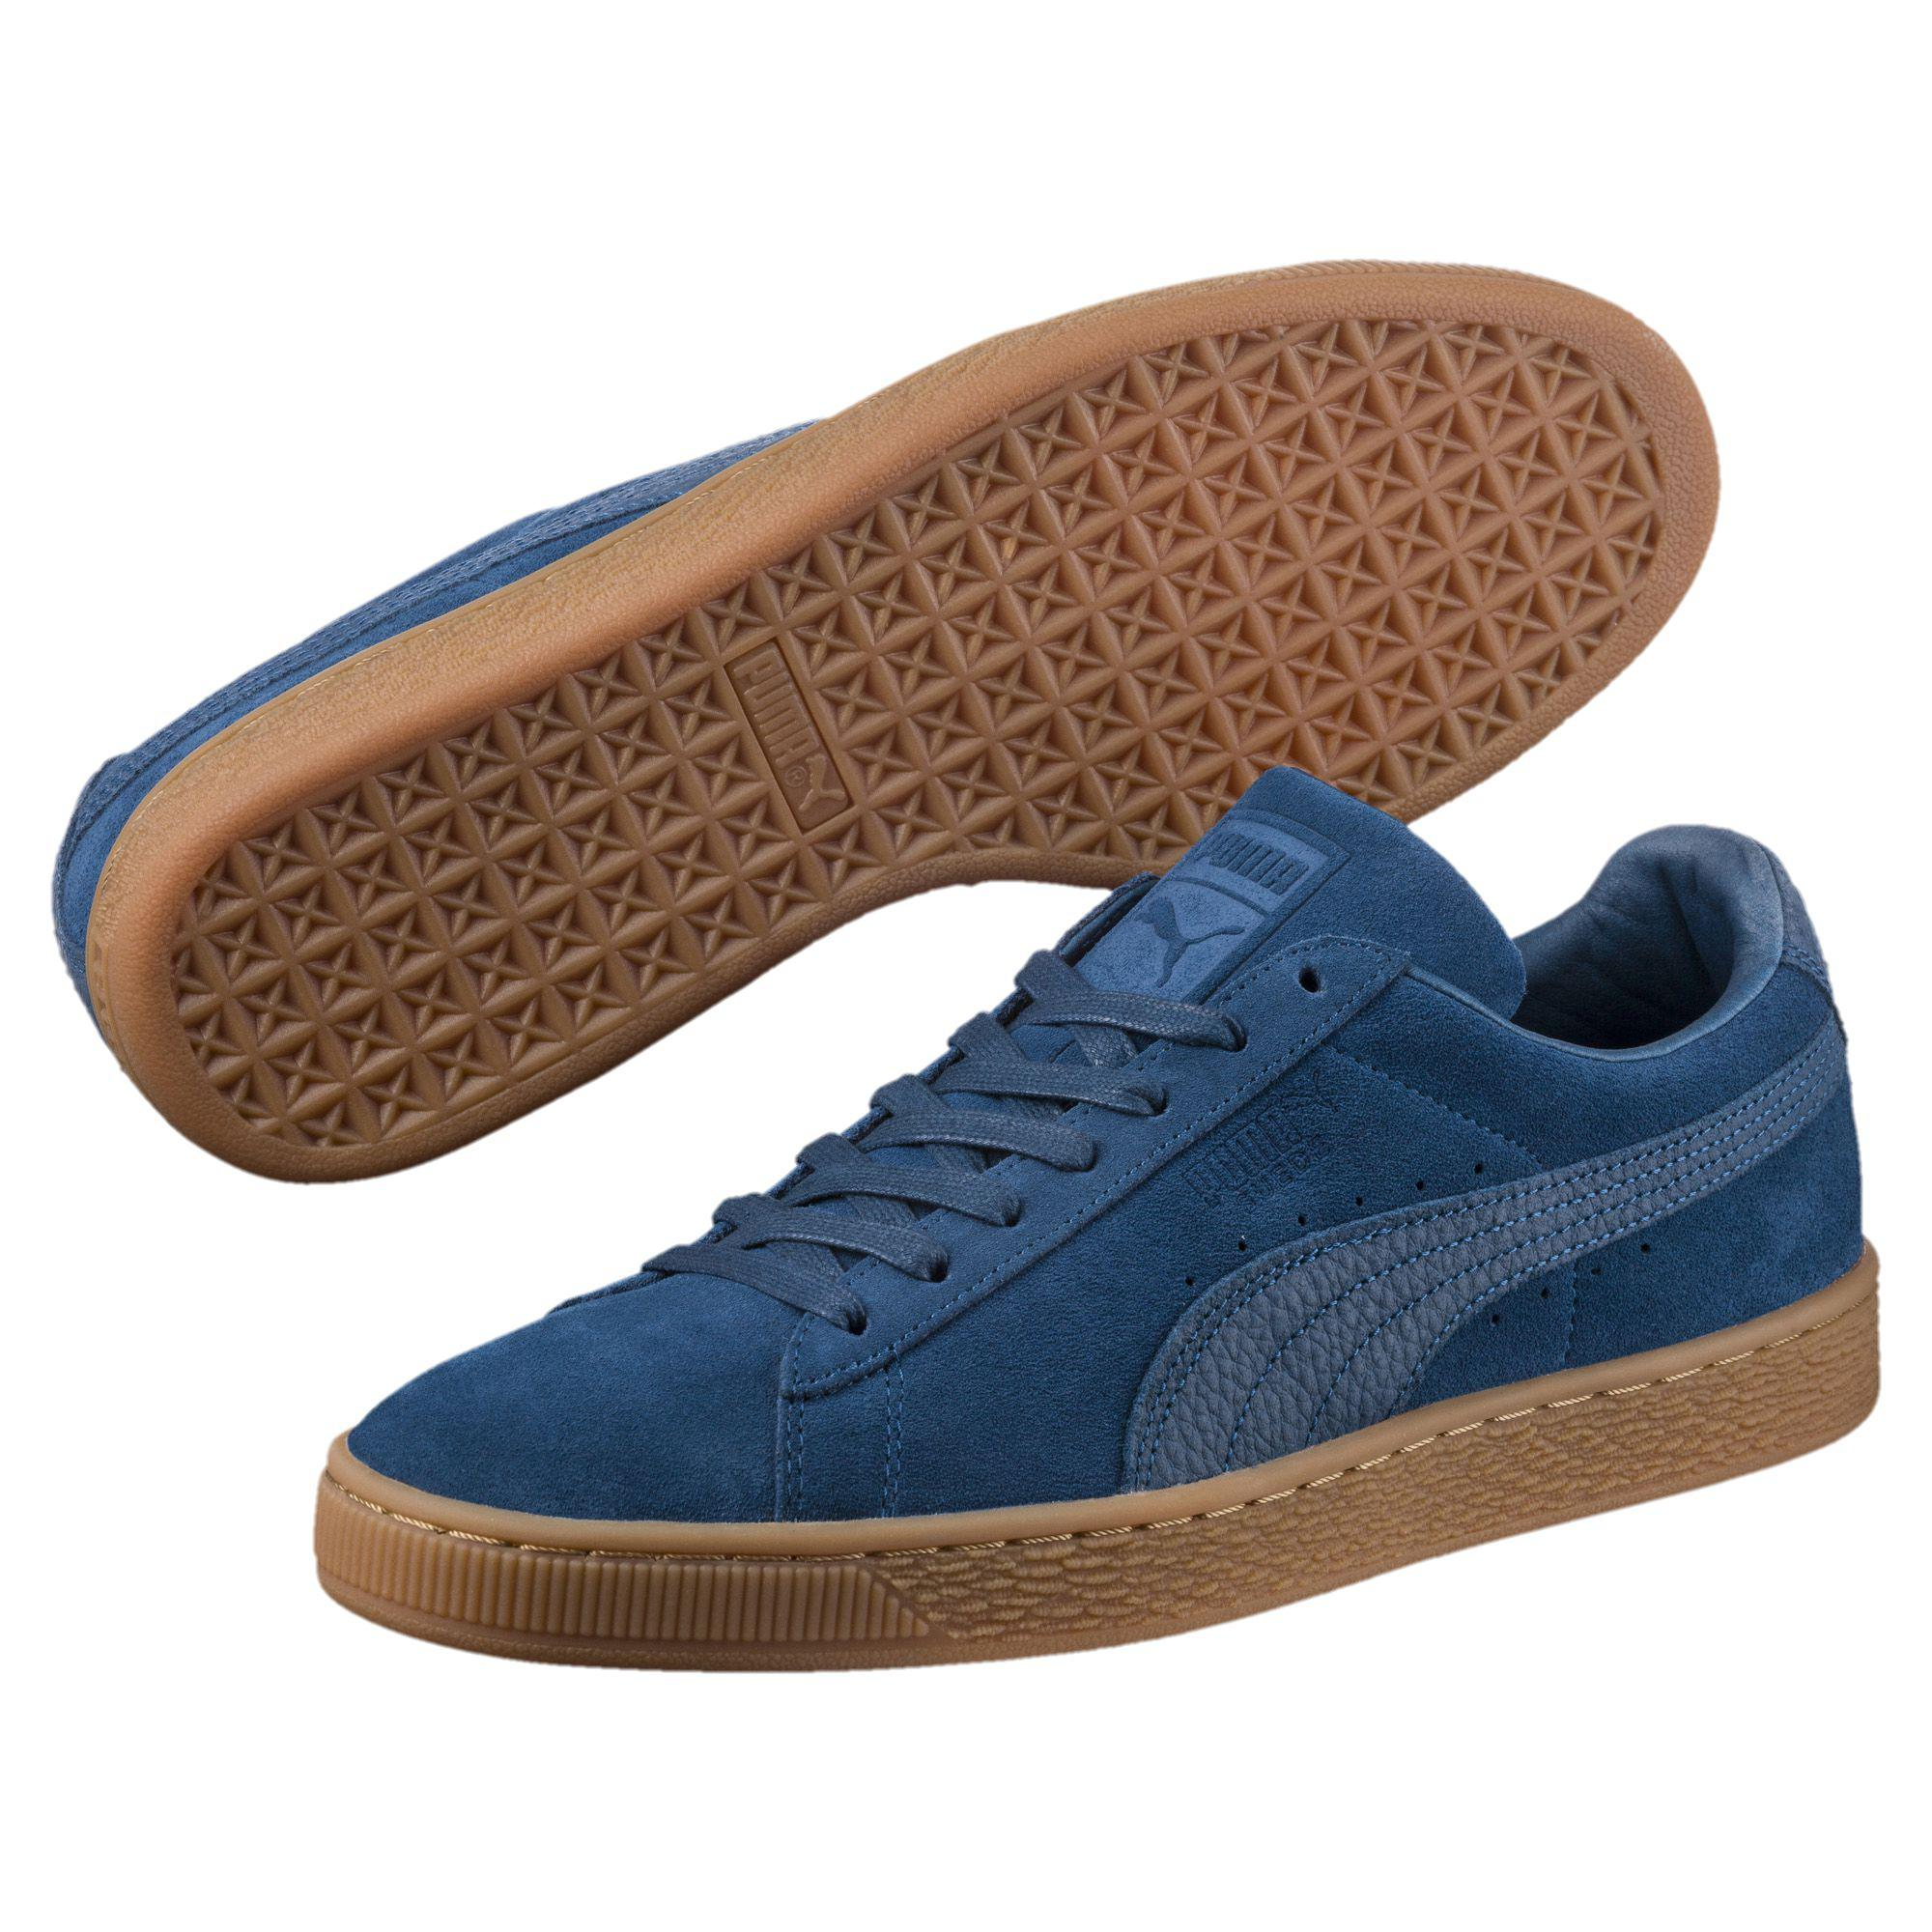 1f2ca685035 Lyst - PUMA Suede Classic Natural Warmth Sneakers in Blue for Men